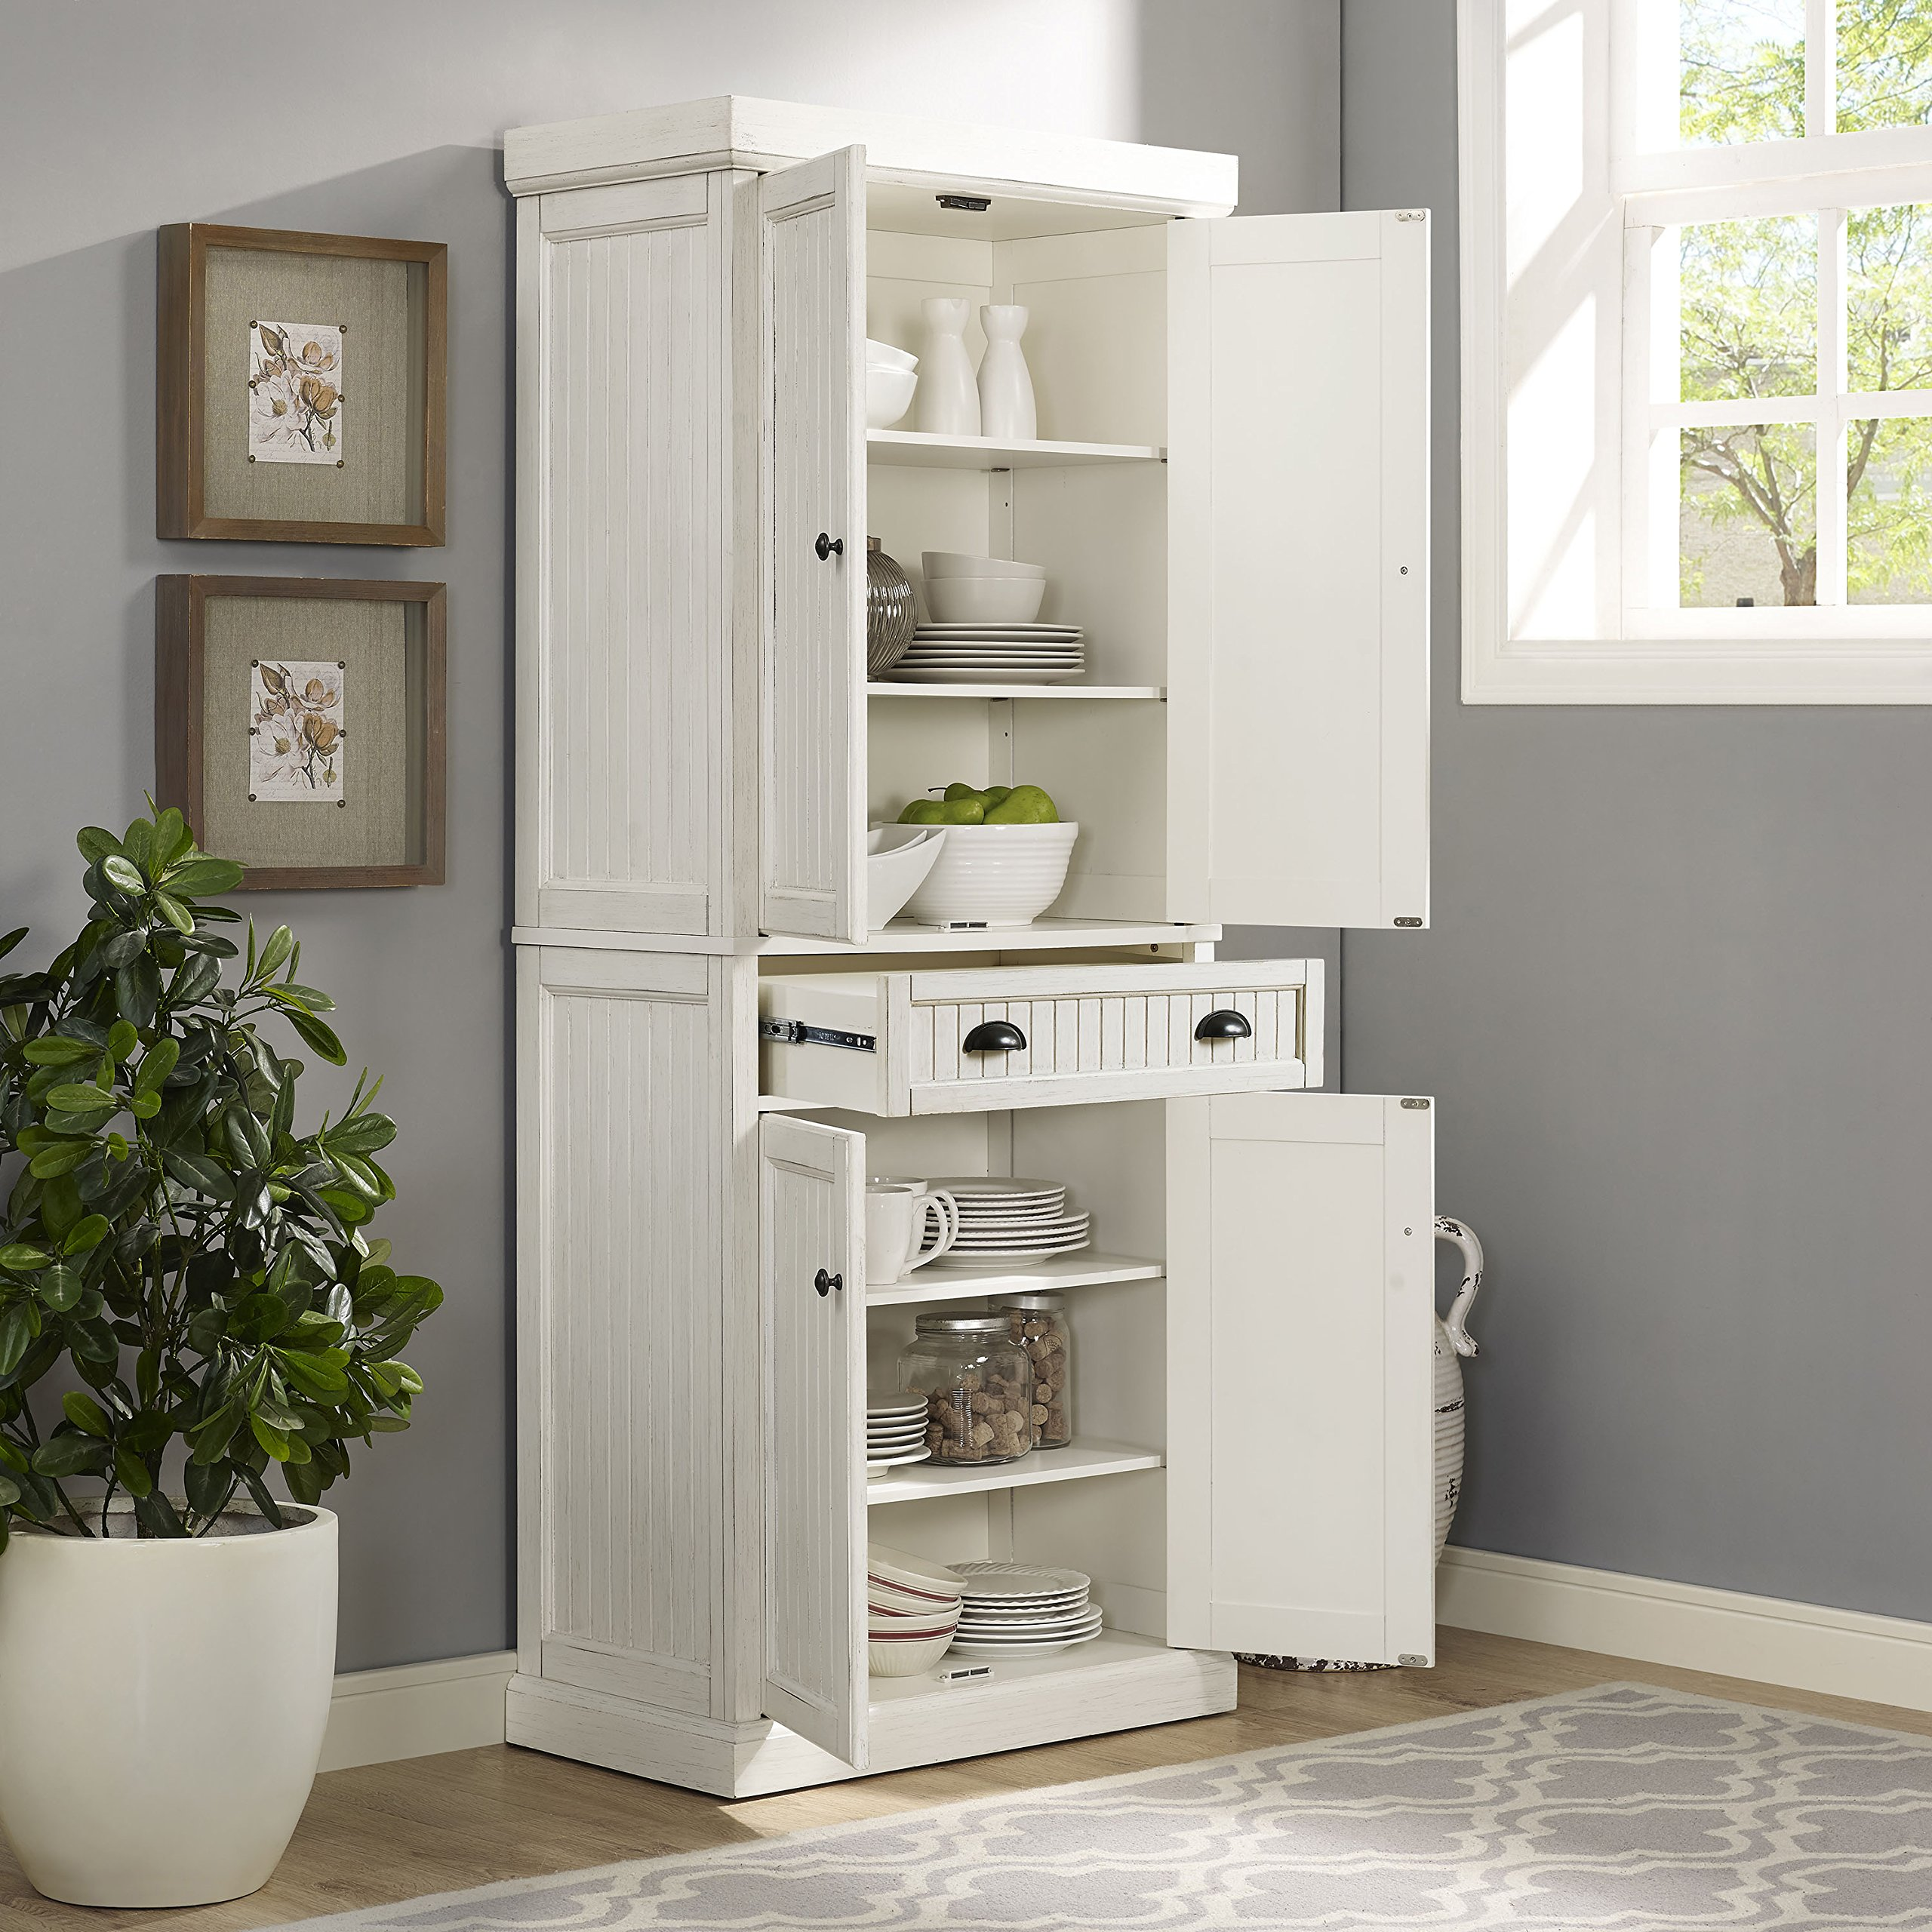 Crosley Furniture Seaside Kitchen Pantry Cabinet - Distressed White by Crosley Furniture (Image #6)